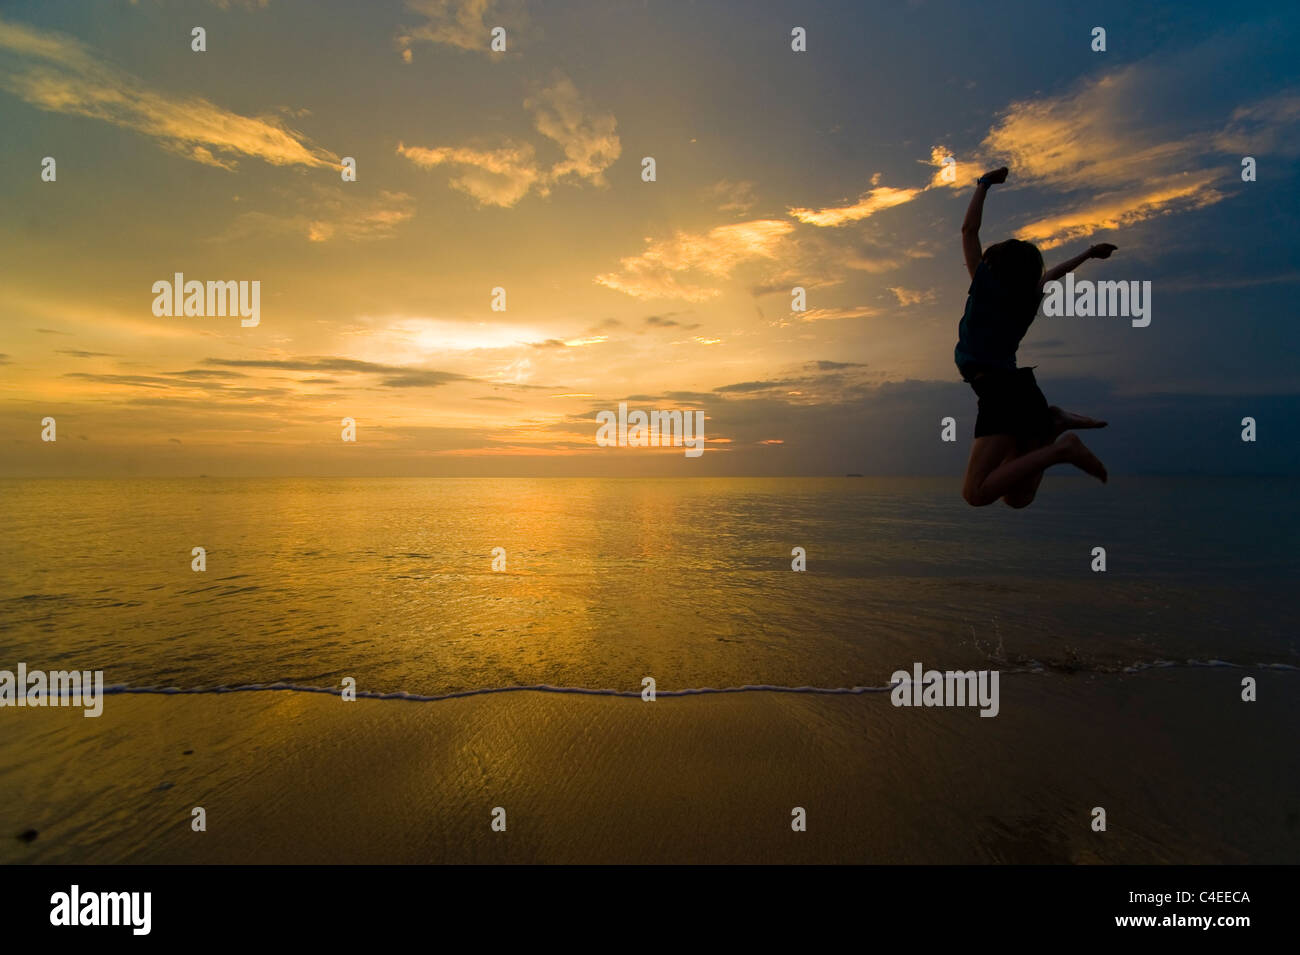 A young woman enjoying her freedom and jumping for joy on the beach at sunset. Taken on Phra Ae Beach, Koh Lanta, - Stock Image